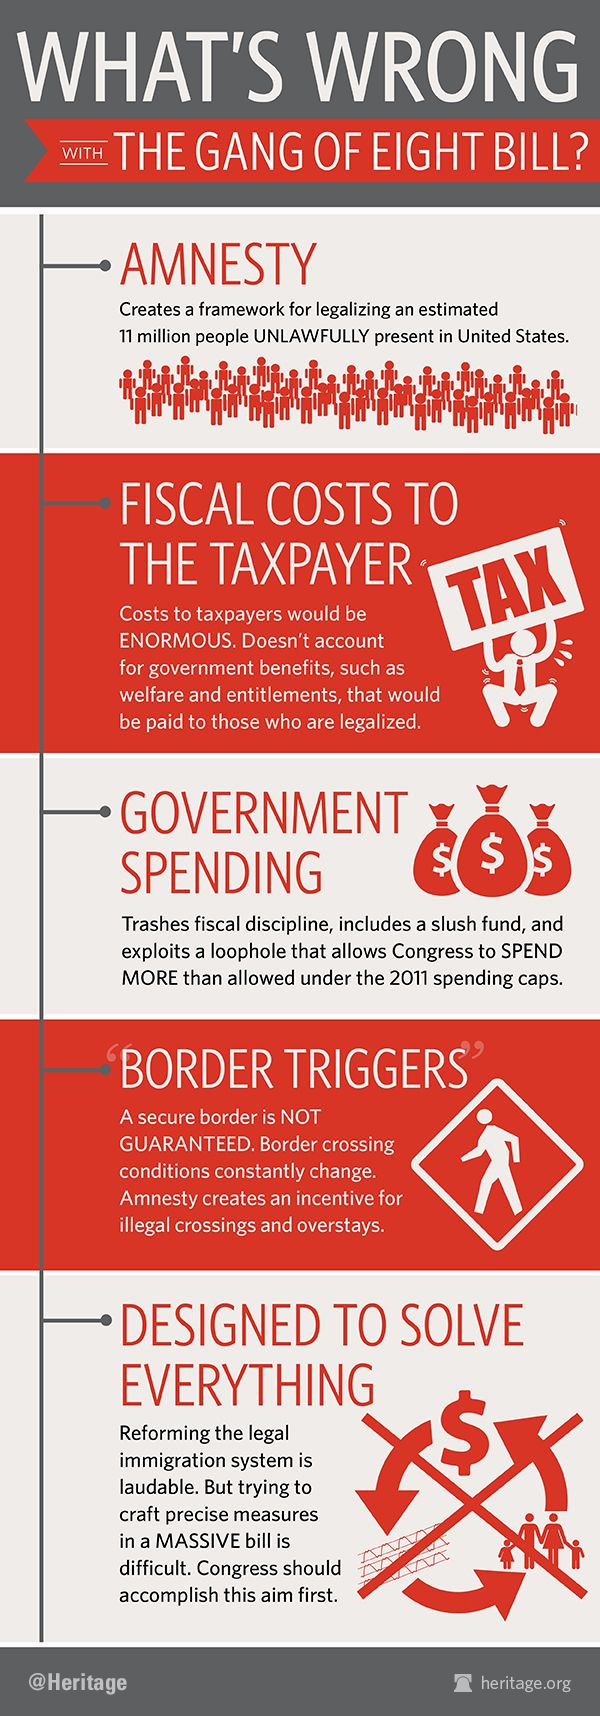 """The Gang of Eight Immigration Bill Explained in One Infographic -- Senators return to Washington next week to debate the Gang of Eight's comprehensive immigration bill. Heritage President Jim DeMint has said the bill is """"unfair, it costs too much, and it's going to make the problem worse."""" We've put together an infographic that explains some of the major problems with a """"comprehensive"""" approach to immigration reform. [05/03/13]"""